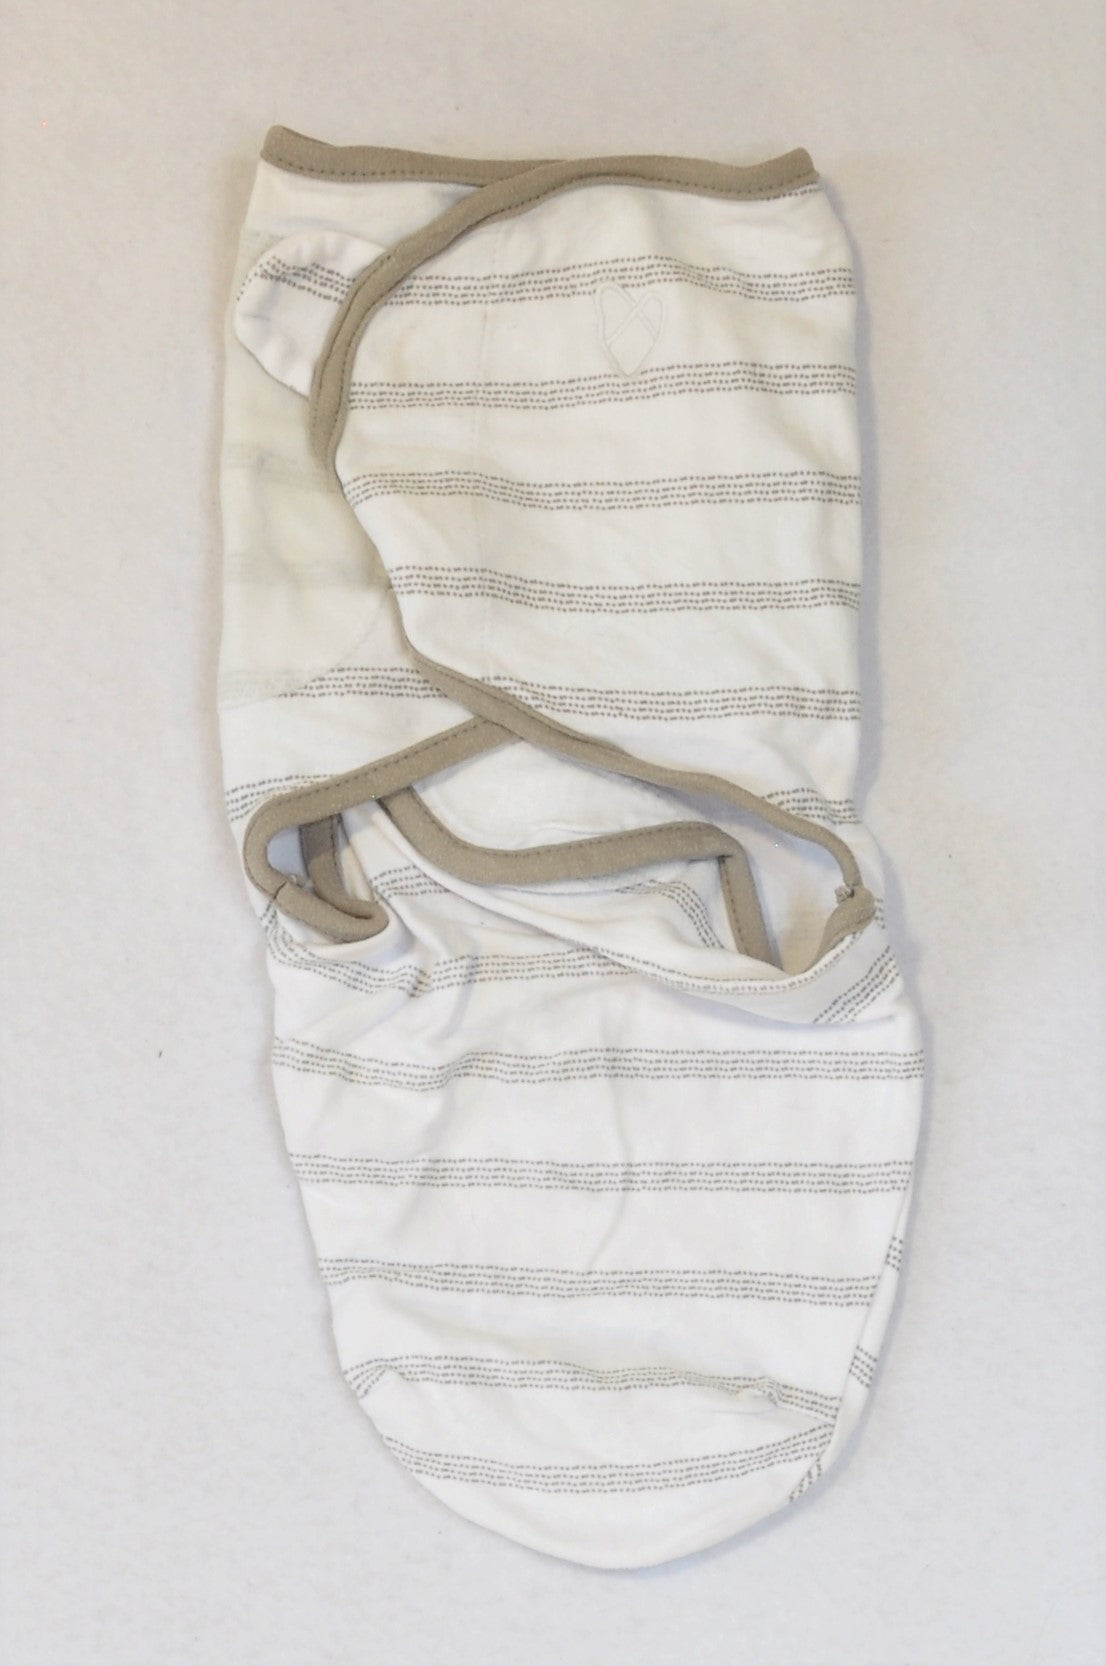 Swaddle Me White & Grey Trim Pin Dot Stripe Swaddle Wrap Unisex 0-3 months